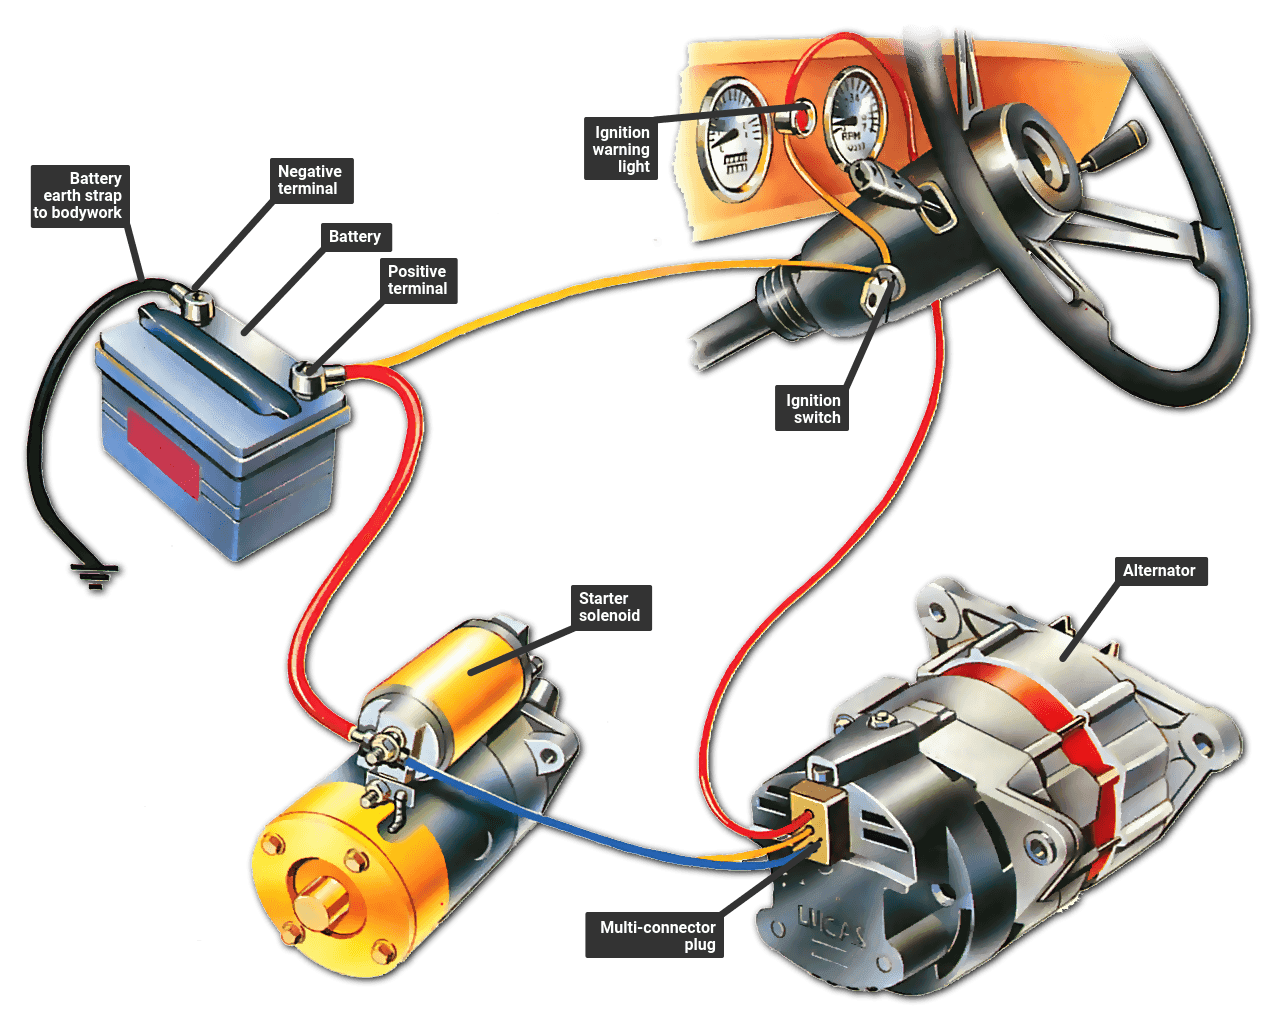 hight resolution of wrg 9423 maruti 800 alternator wiring diagram maruti 800 car wiring diagram pdf